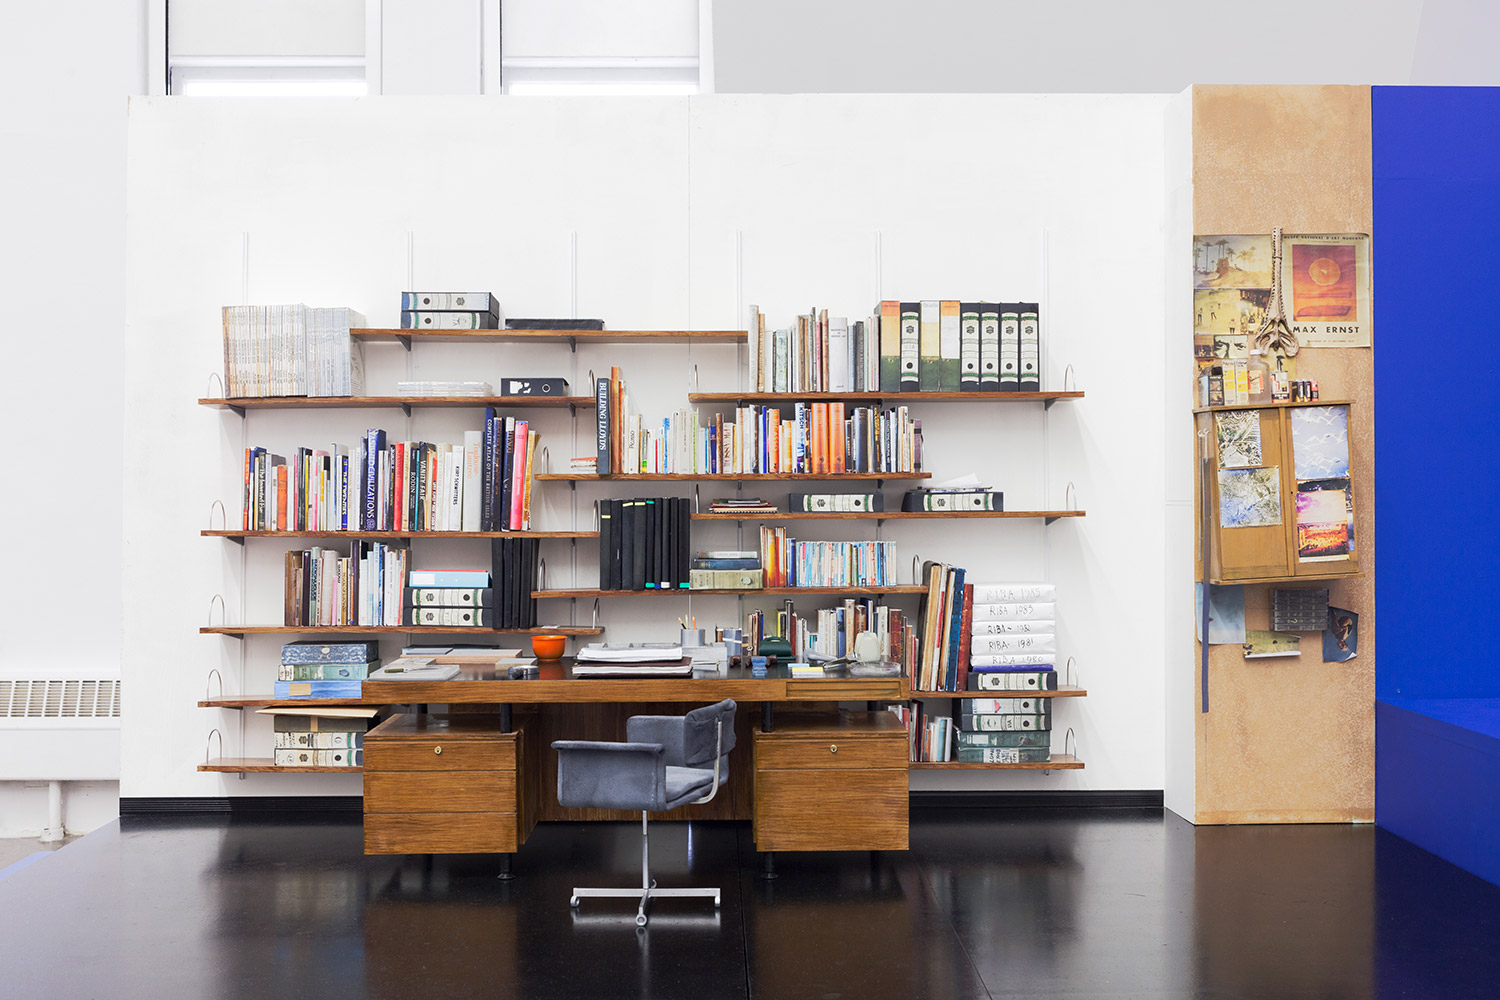 A miniature sculpture of an office desk, with swivel chair, books, hanging works and miscellaneous materials